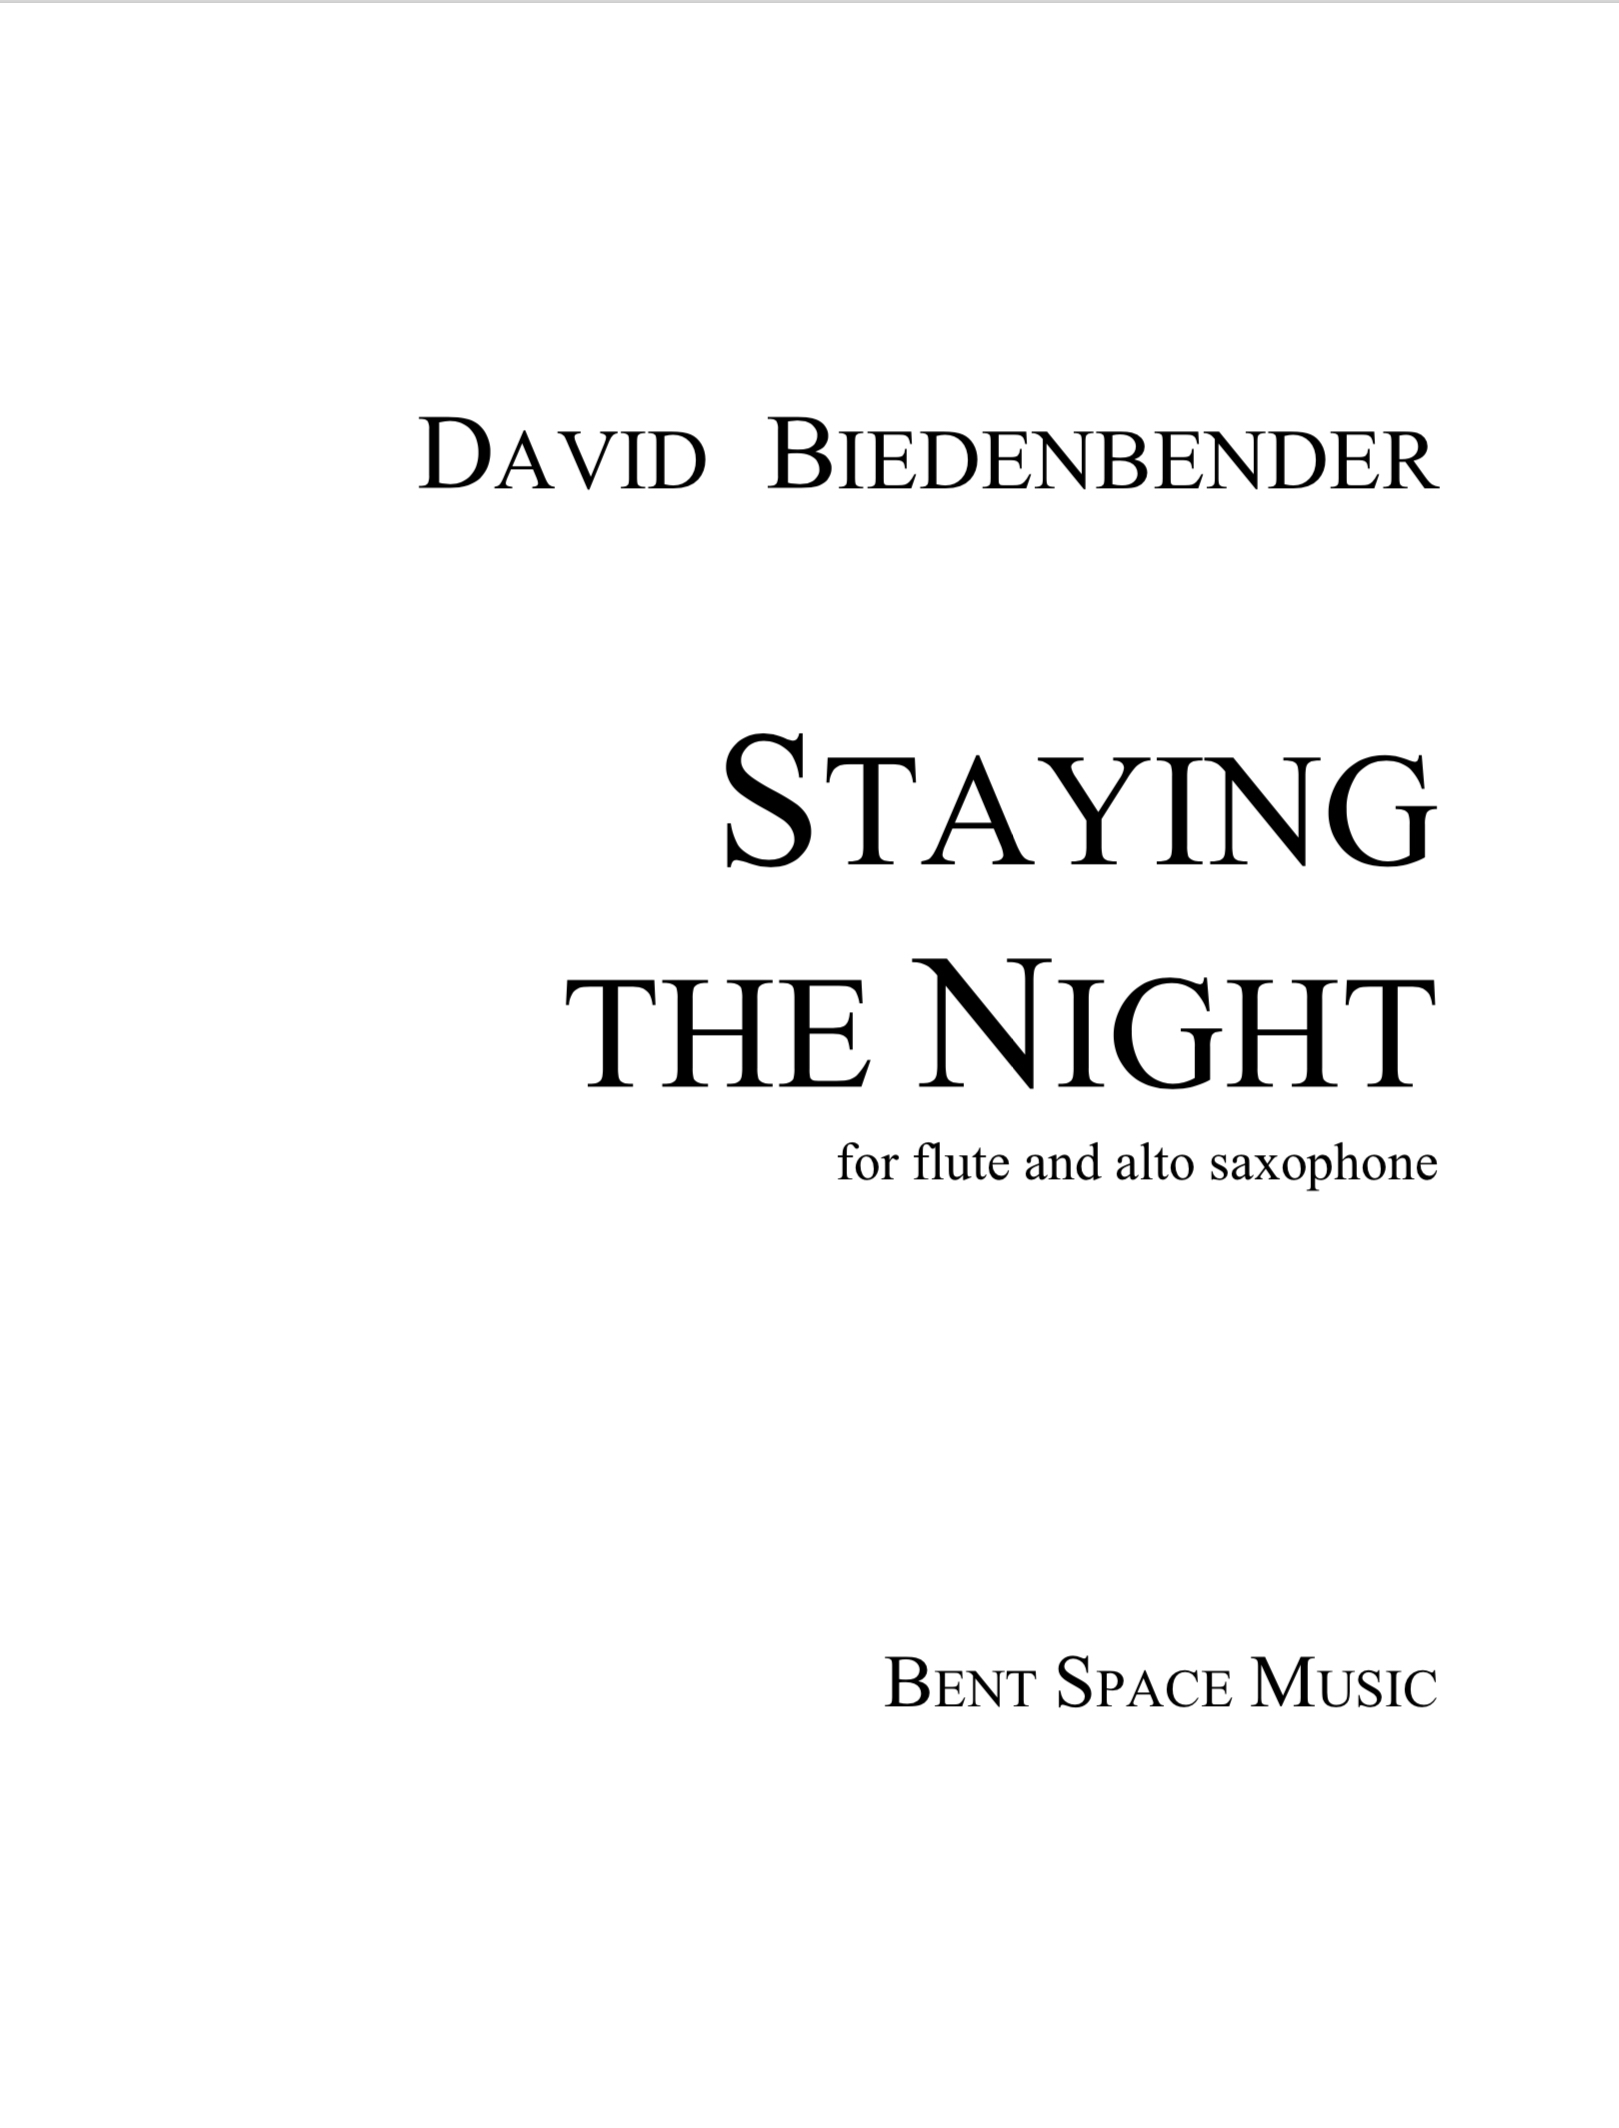 Staying The Night (Flute/Alto Sax Version) by David Biedenbender